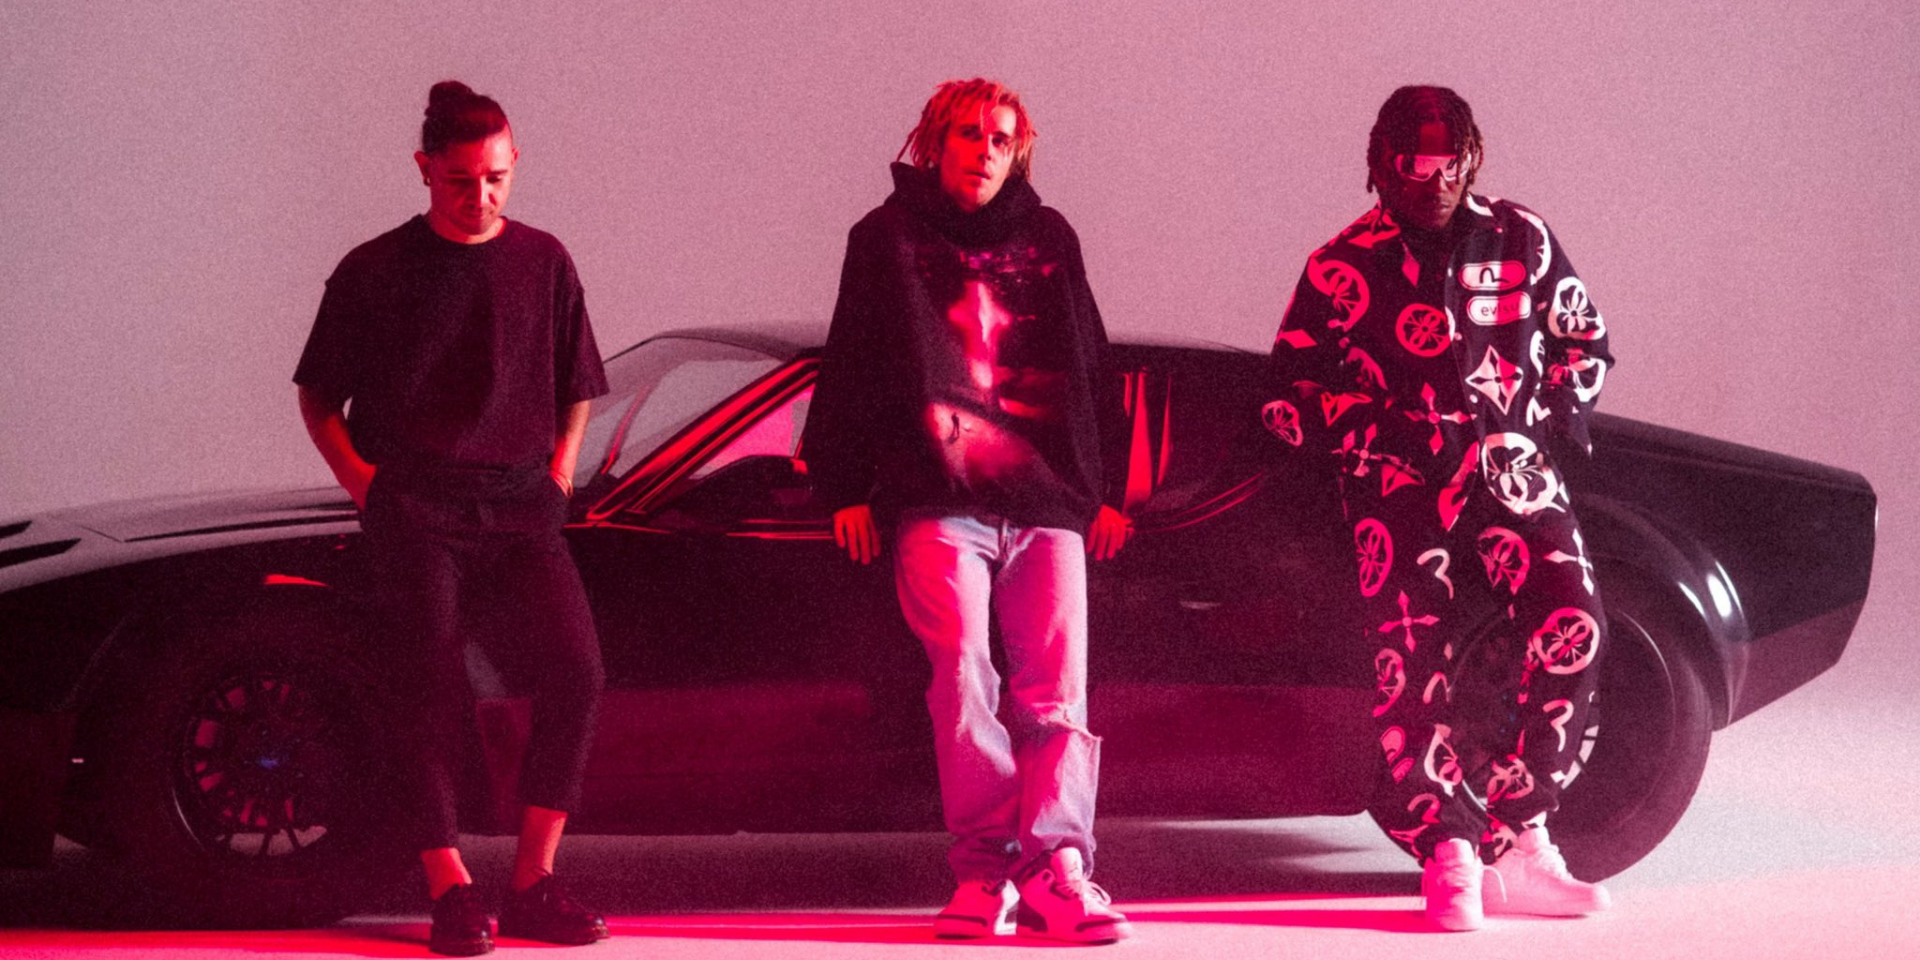 Justin Bieber, Skrillex, and Don Toliver star in music video for 'Don't Go' - watch